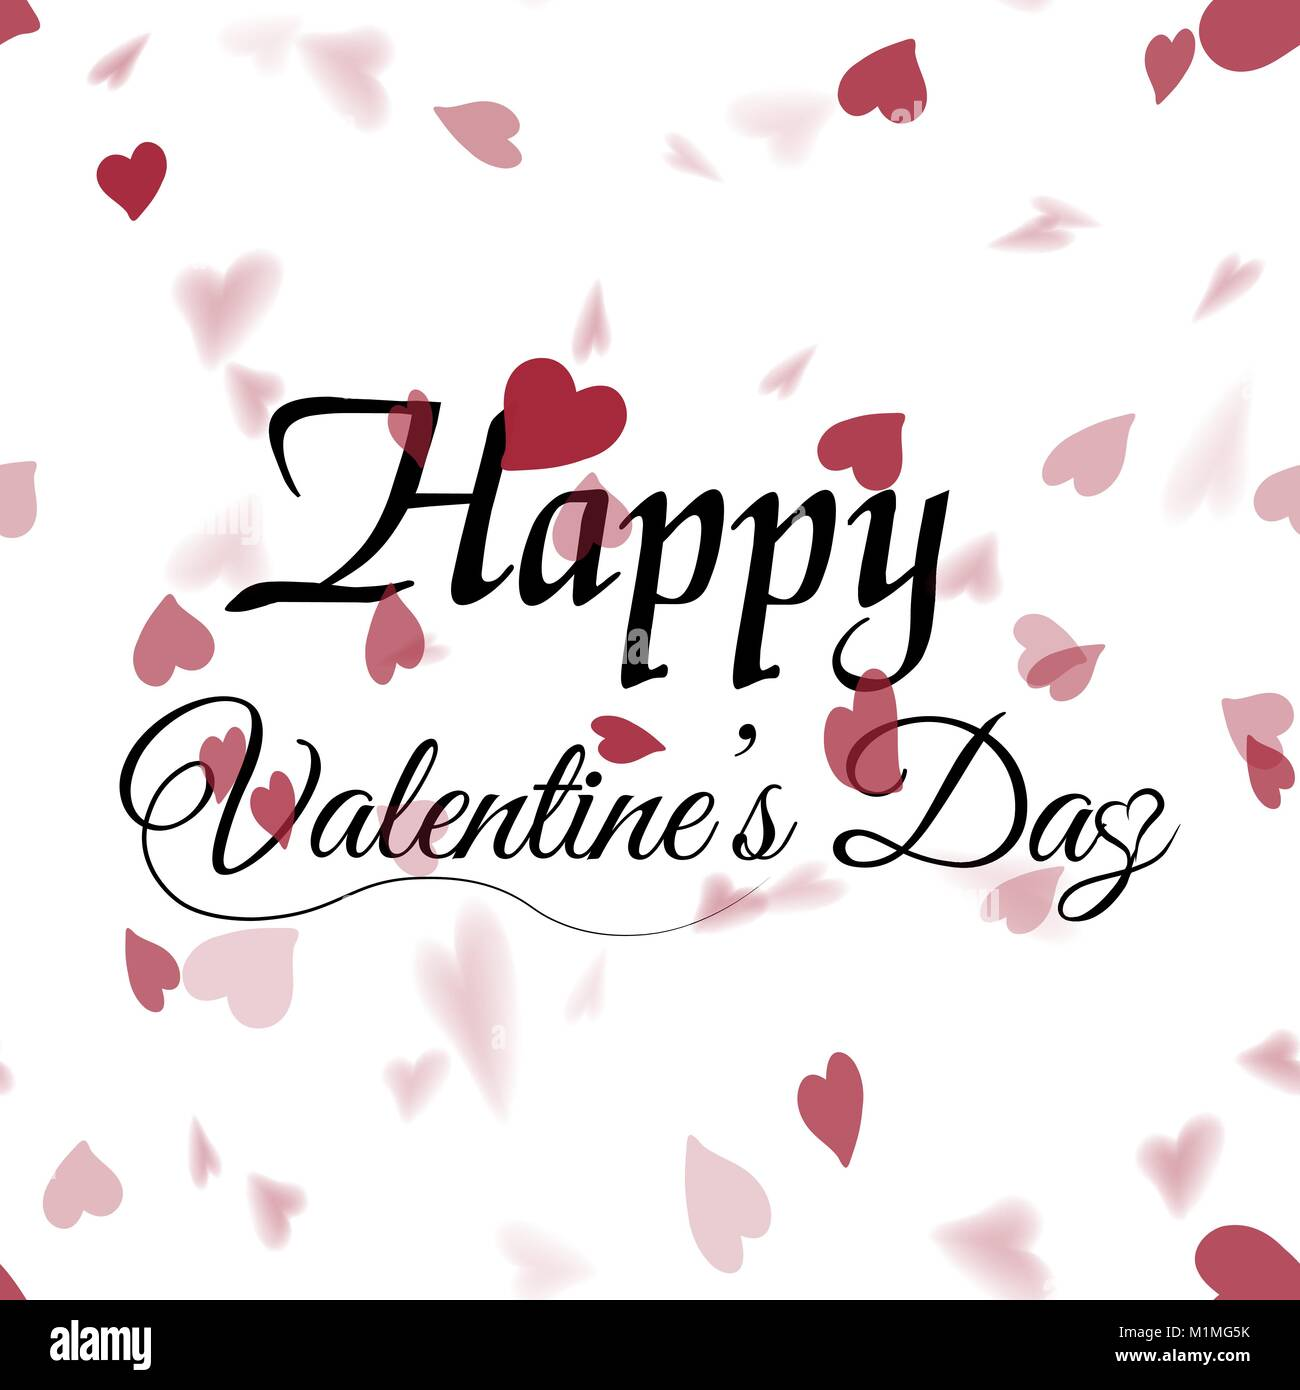 Valentines Greeting Card With Falling Red Hearts On White Vector